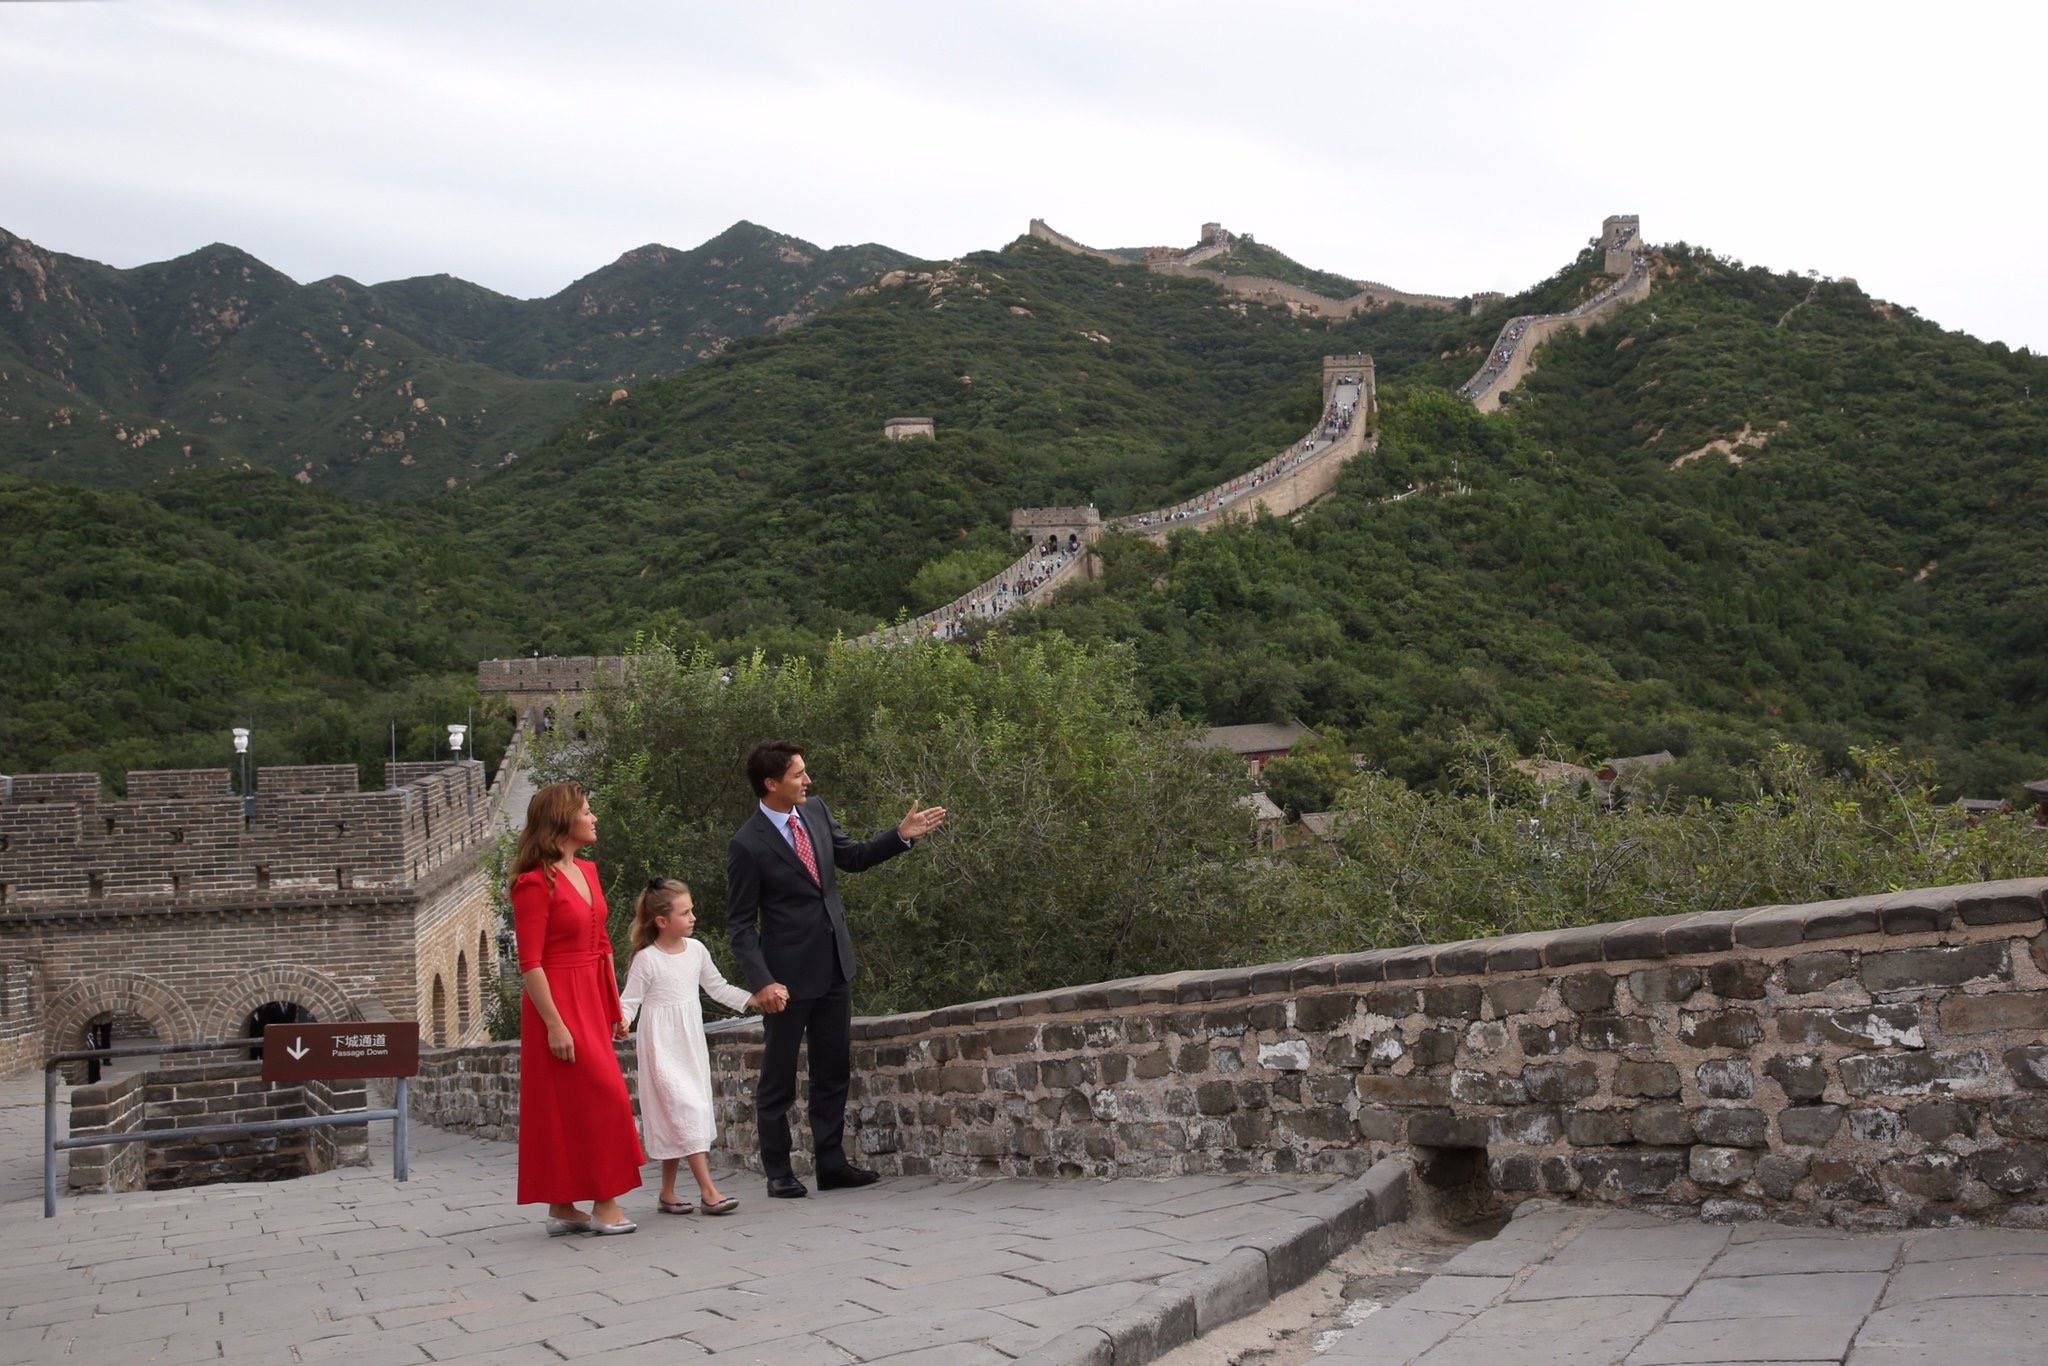 FILE PHOTO: PM Justin Trudeau and family walk the Great Wall of China. (Photo: Justin Trudeau/Facebook)